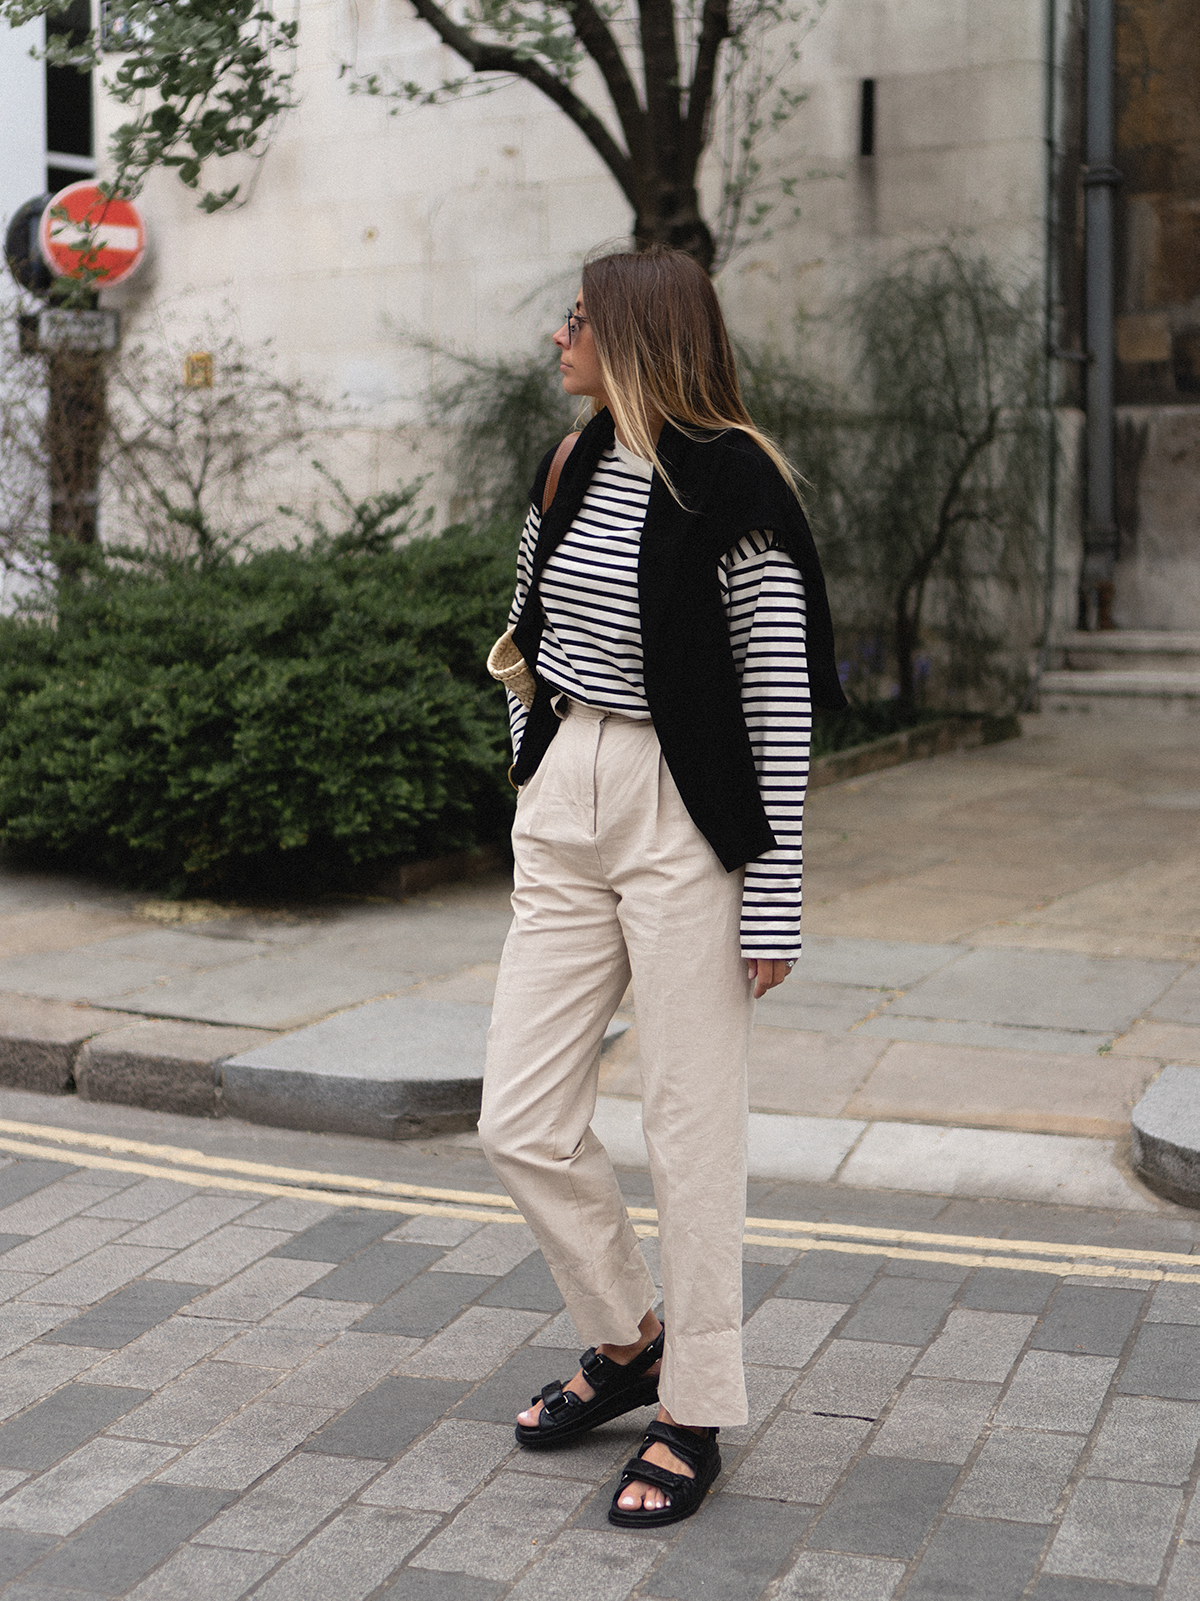 Emma Hill wears black and white breton stripe long sleeve t-shirt, black jumper worn over shoulders, Loewe basket bag, beige high waisted trousers, Chanel quilted leather dad sandals. Chic Spring outfit